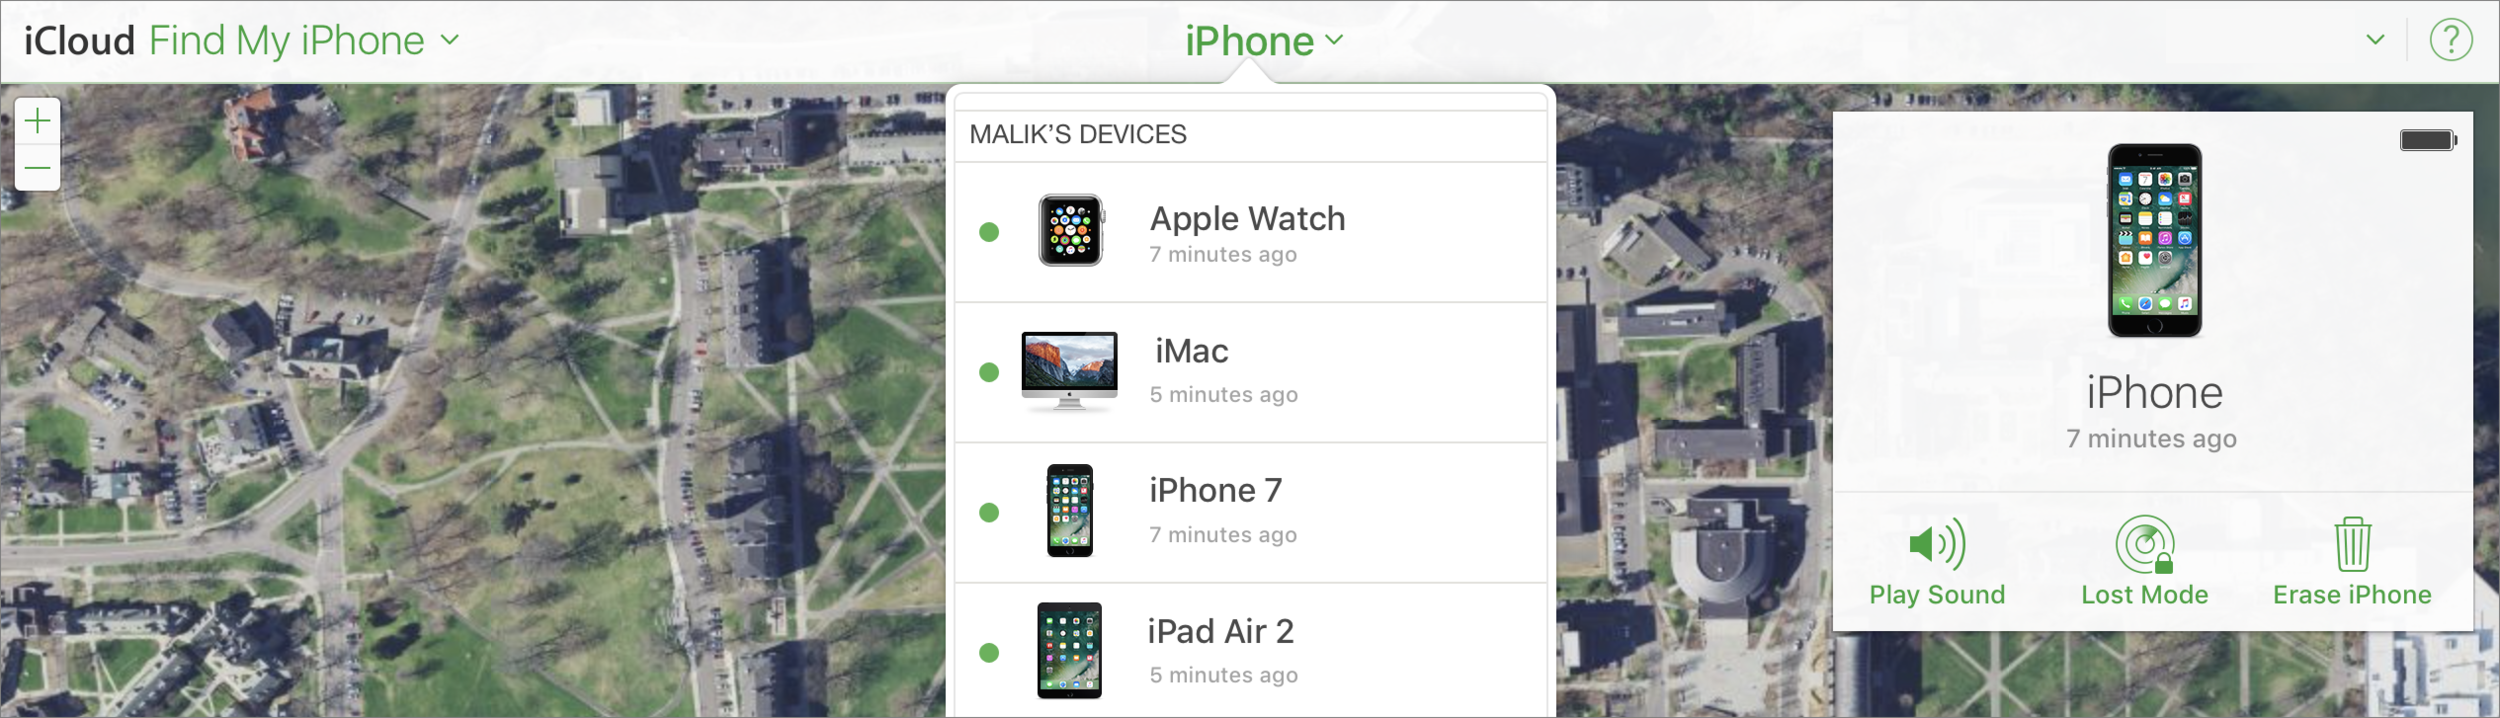 Family-Sharing-Find-My-iPhone-in-iCloud.png